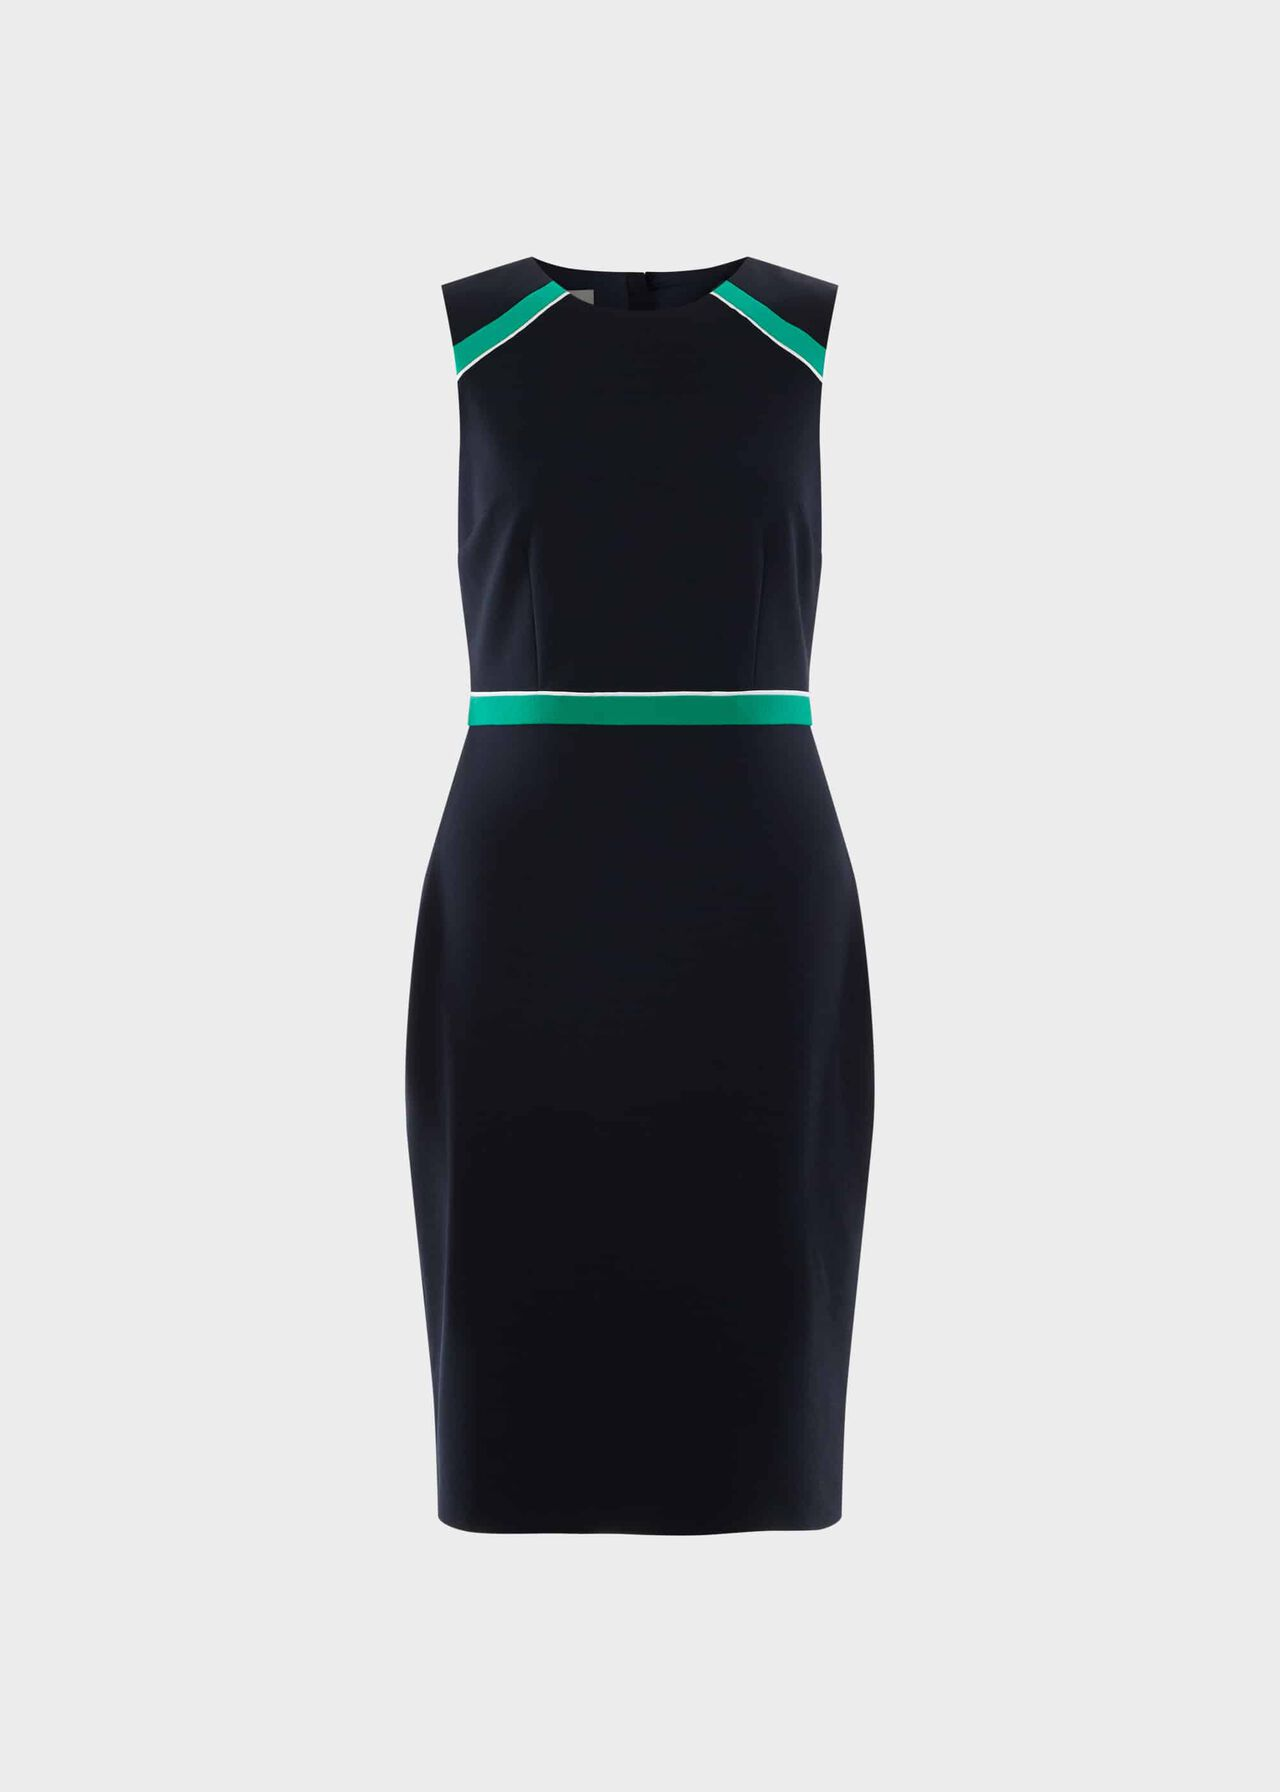 Petite Nala Dress Navy Green Ivry